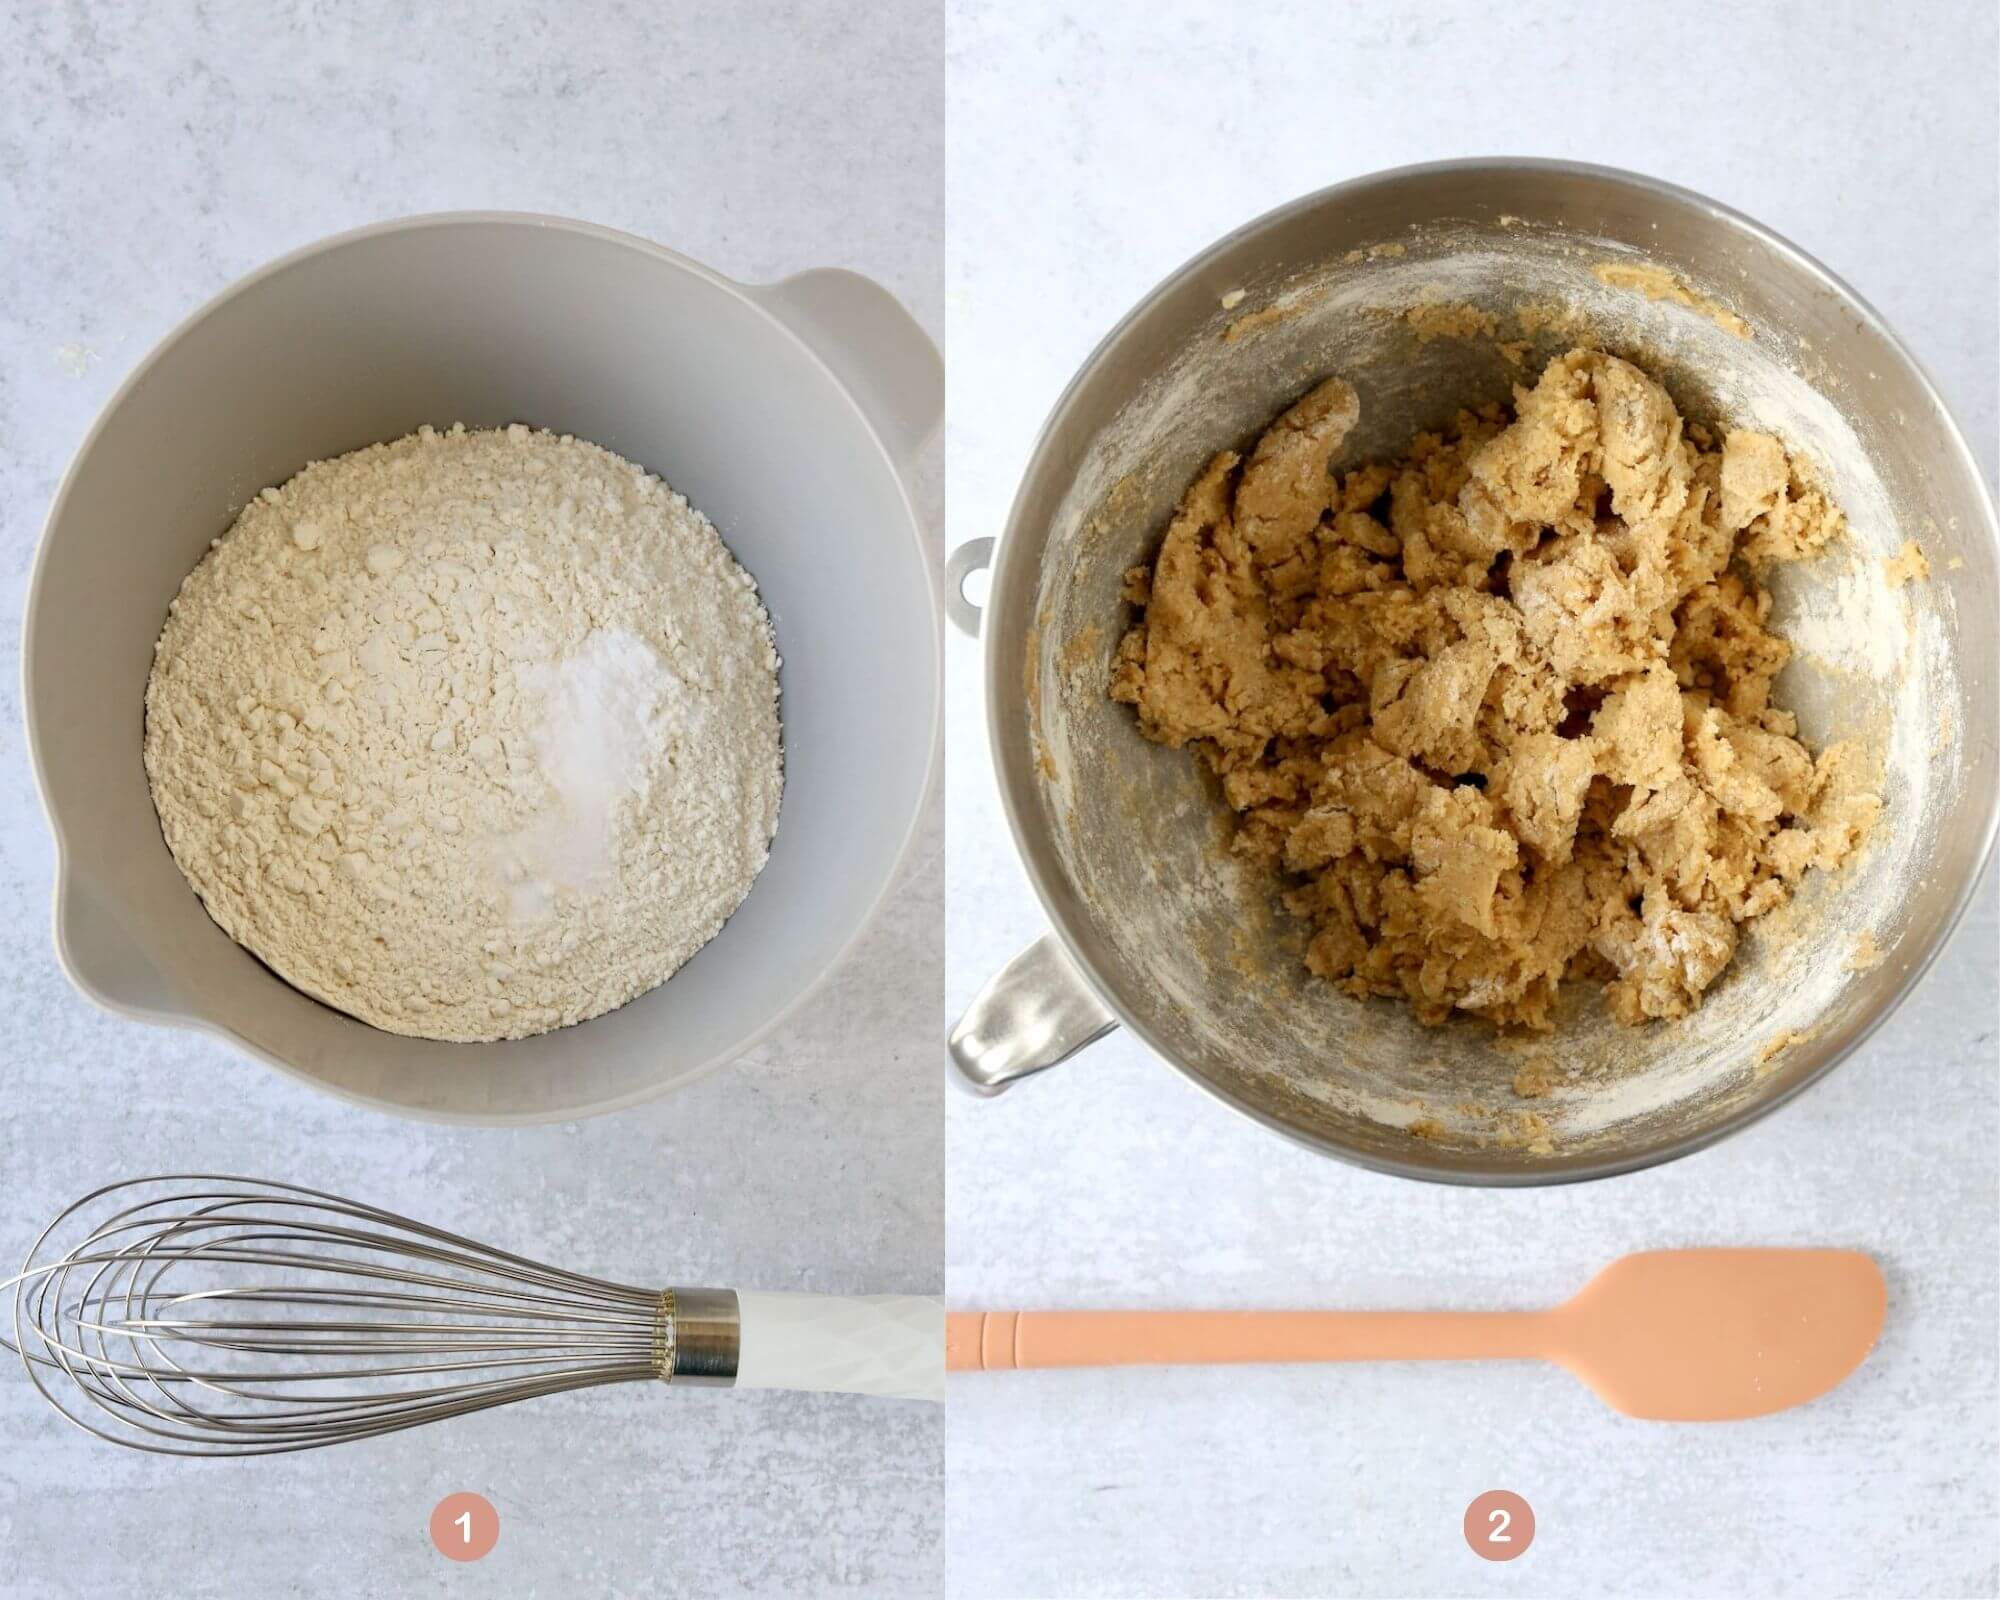 a bowl of flour, baking soda and salt, next to a bowl of mixed cookie batter